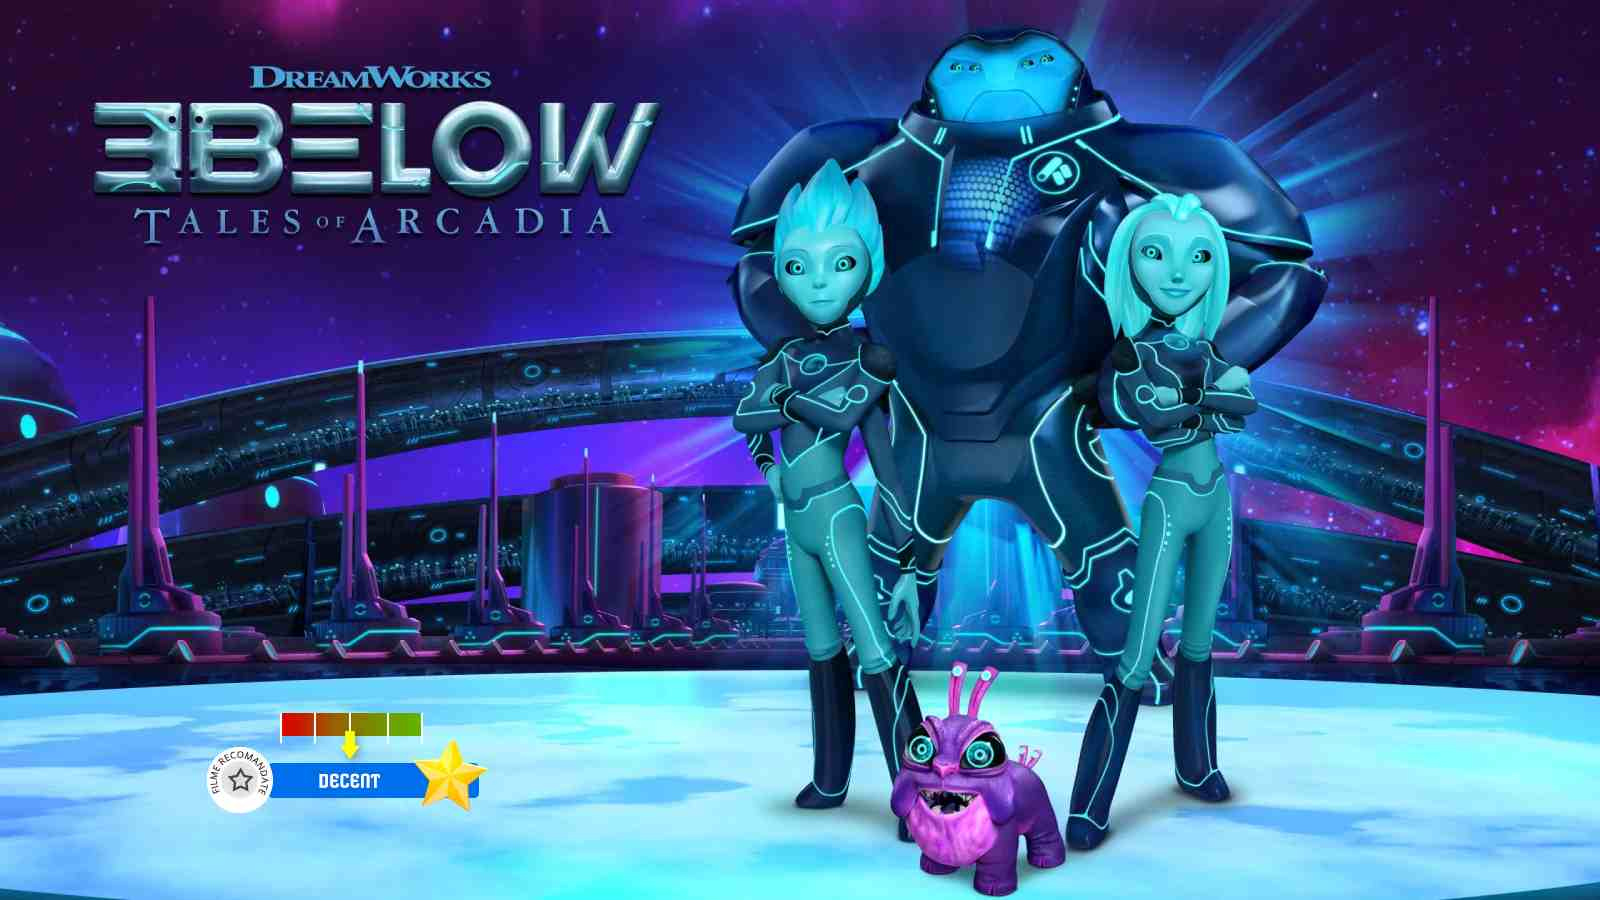 3Below: Tales of Arcadia (2018-2019)